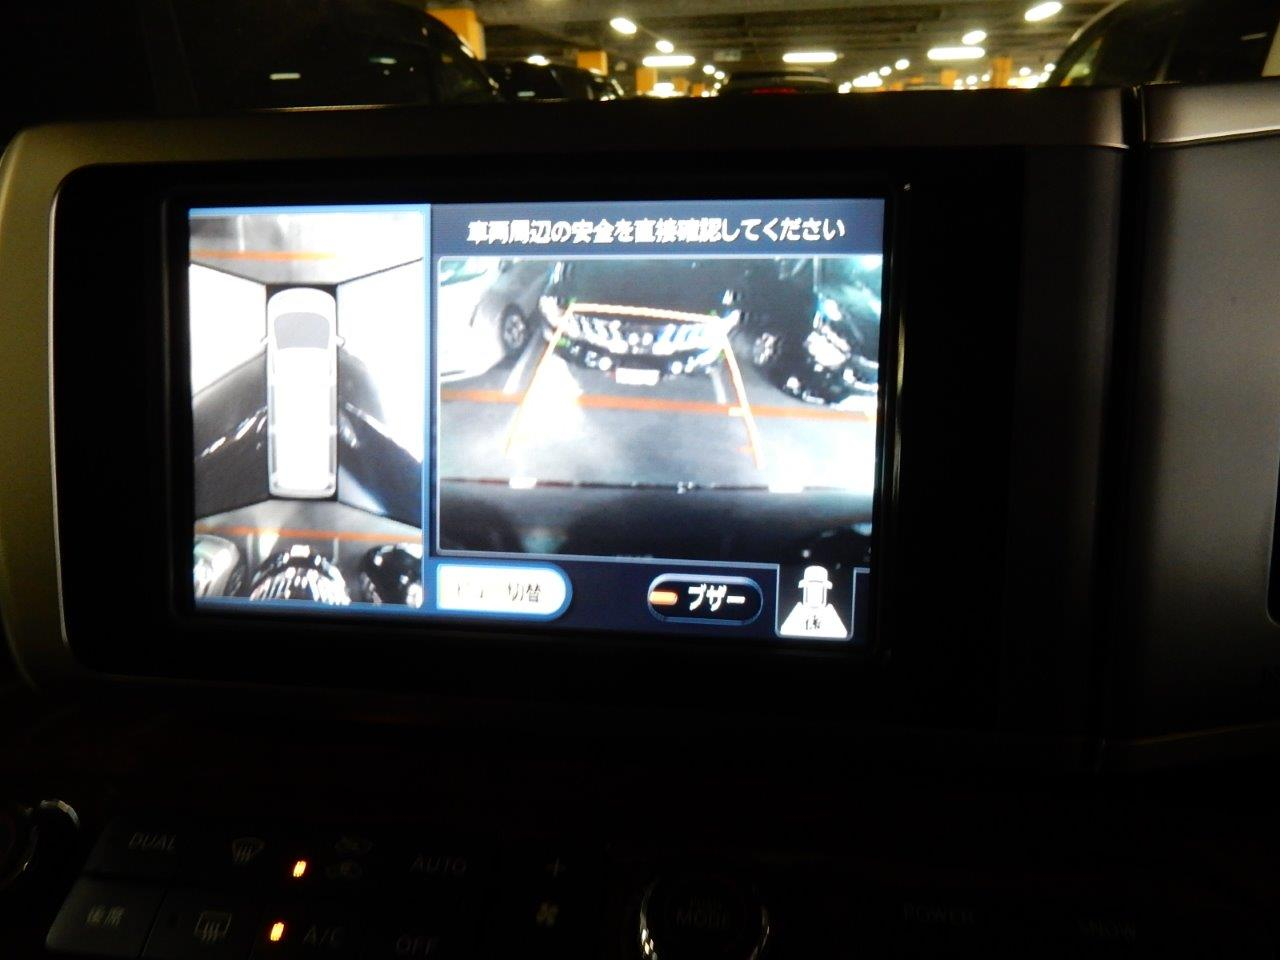 2009 Nissan Elgrand NE51 around view monitor